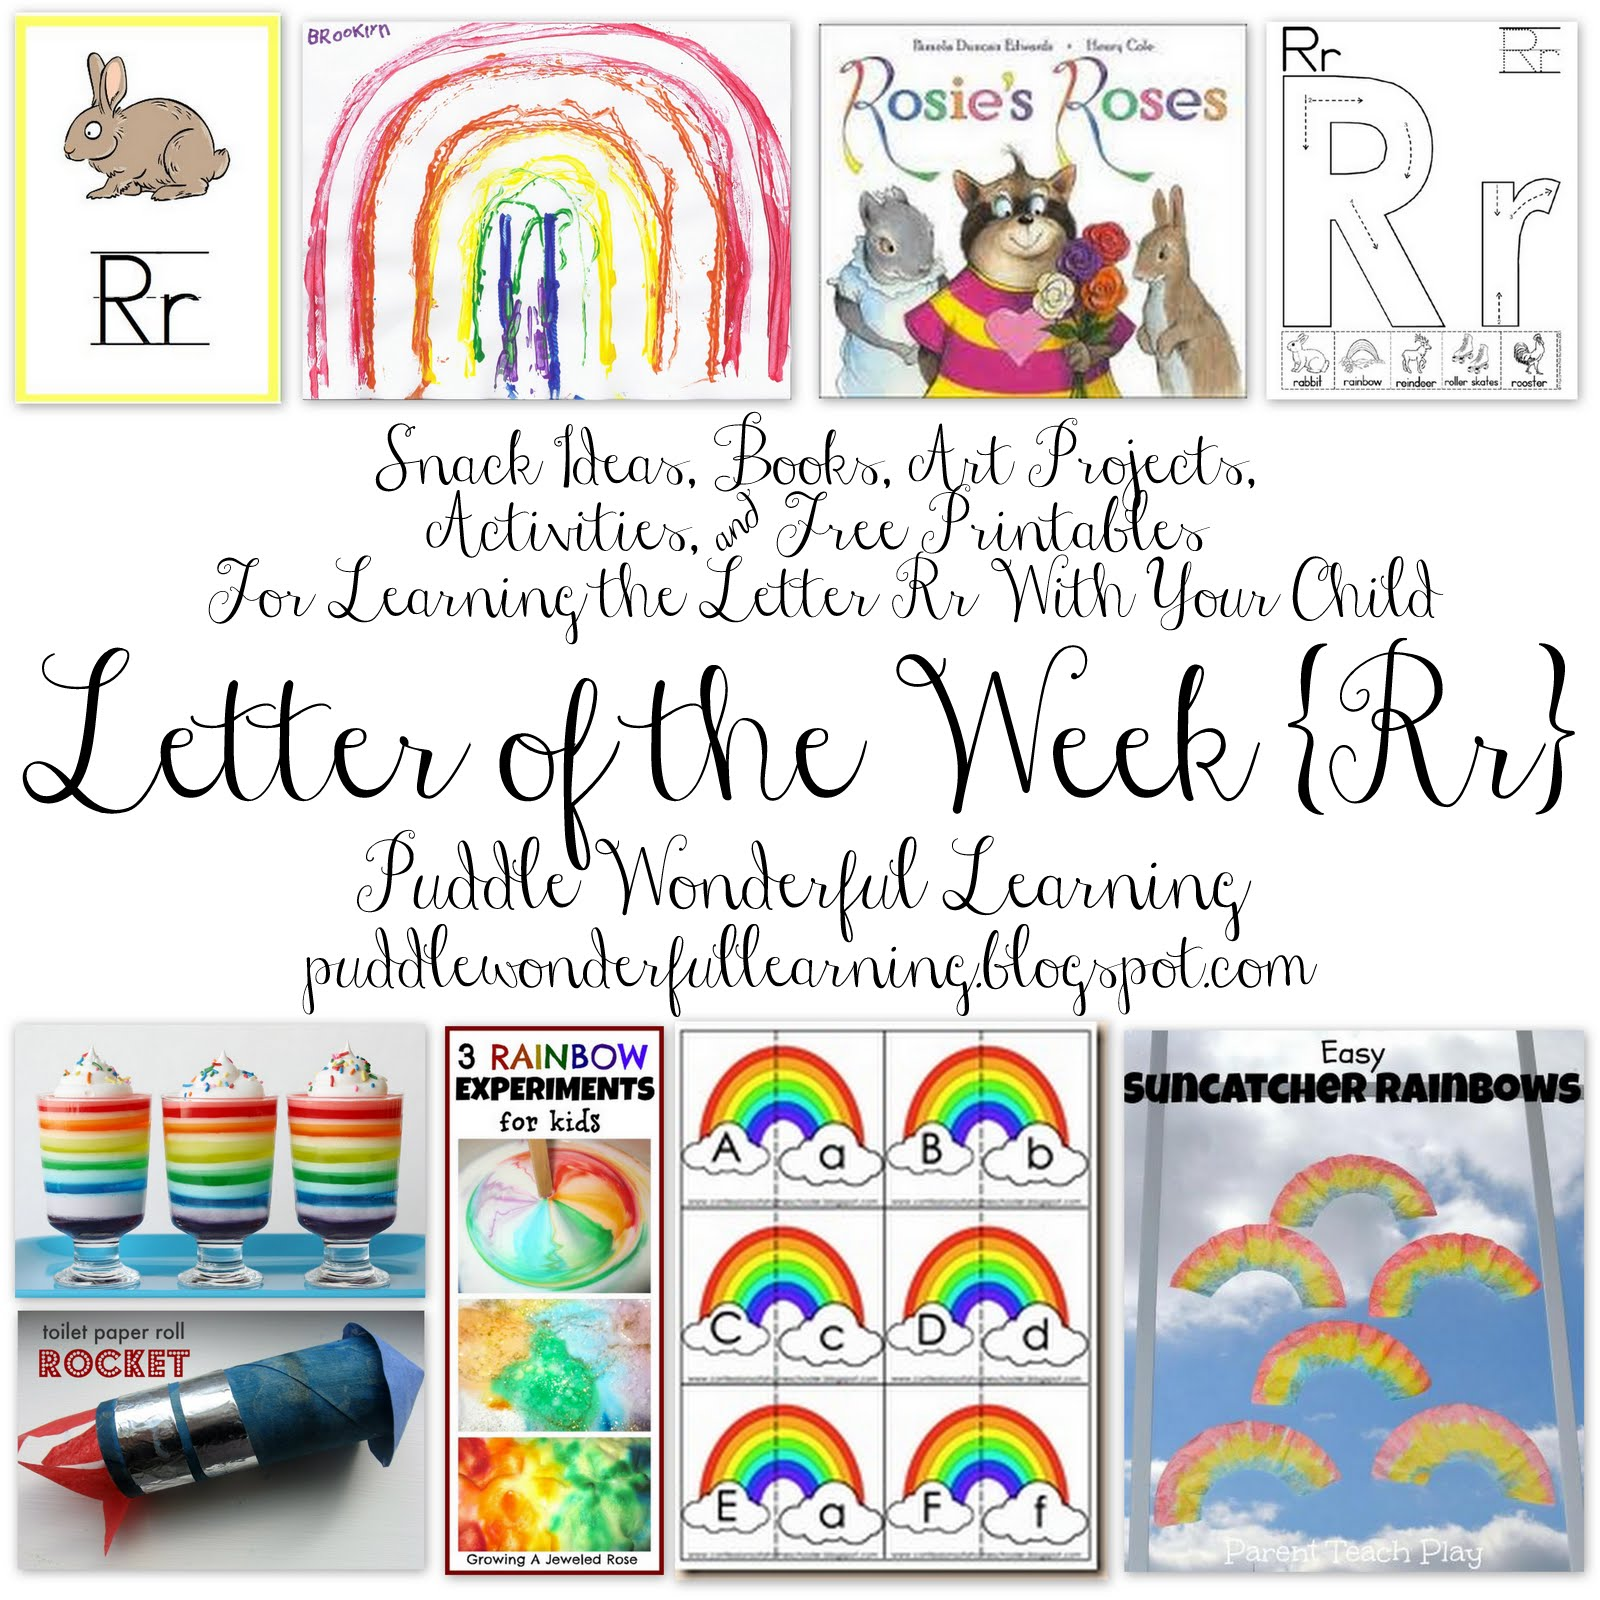 Puddle Wonderful Learning Preschool Activities Letter Of The Week Rr